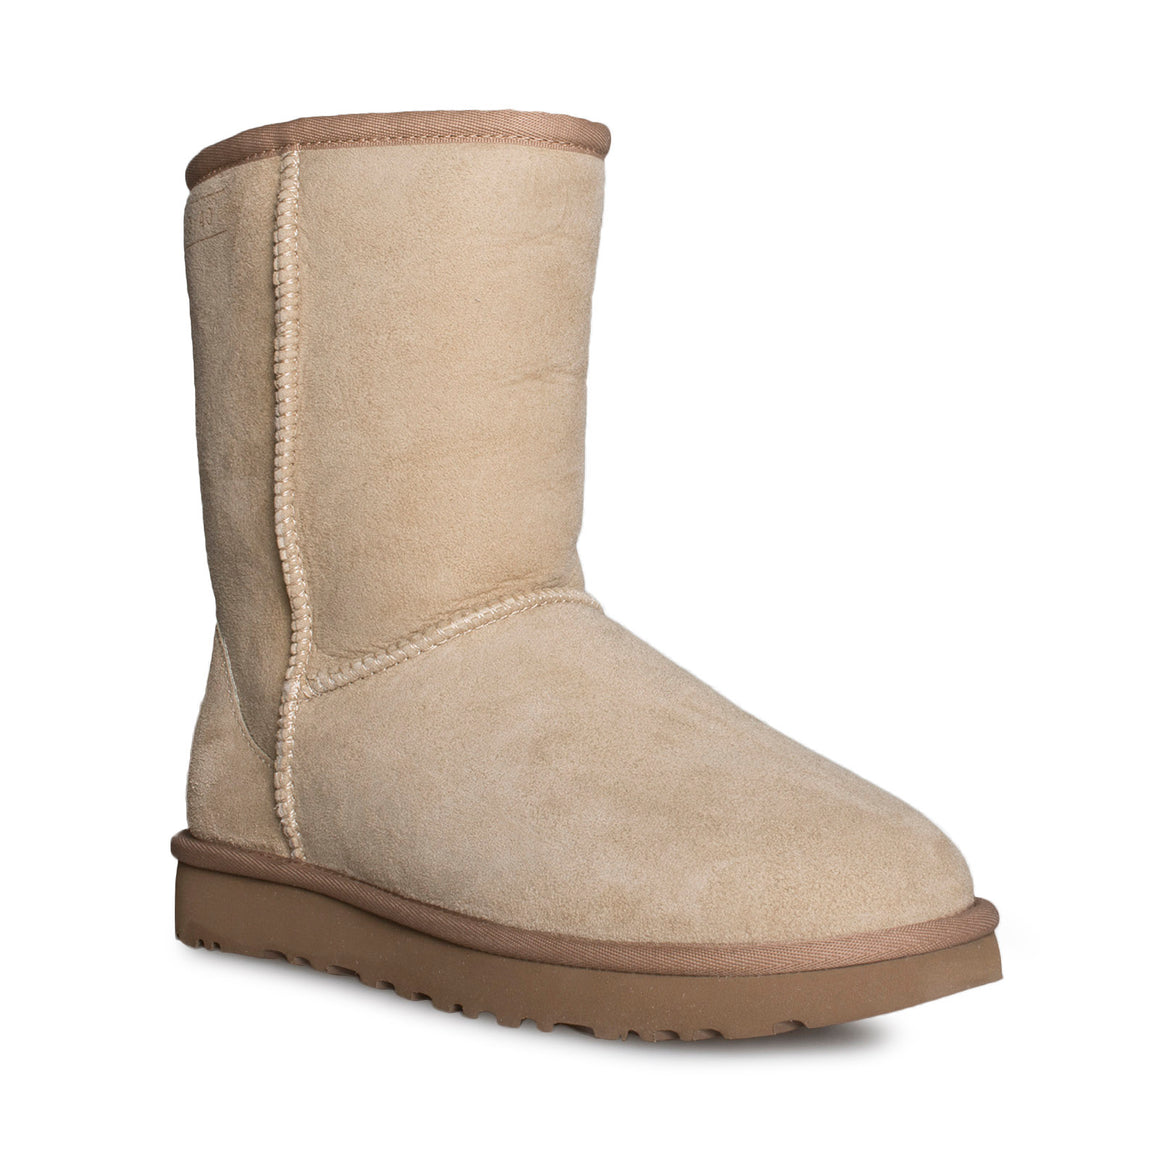 UGG Classic Short 40:40:40 Sand Boots - Women's